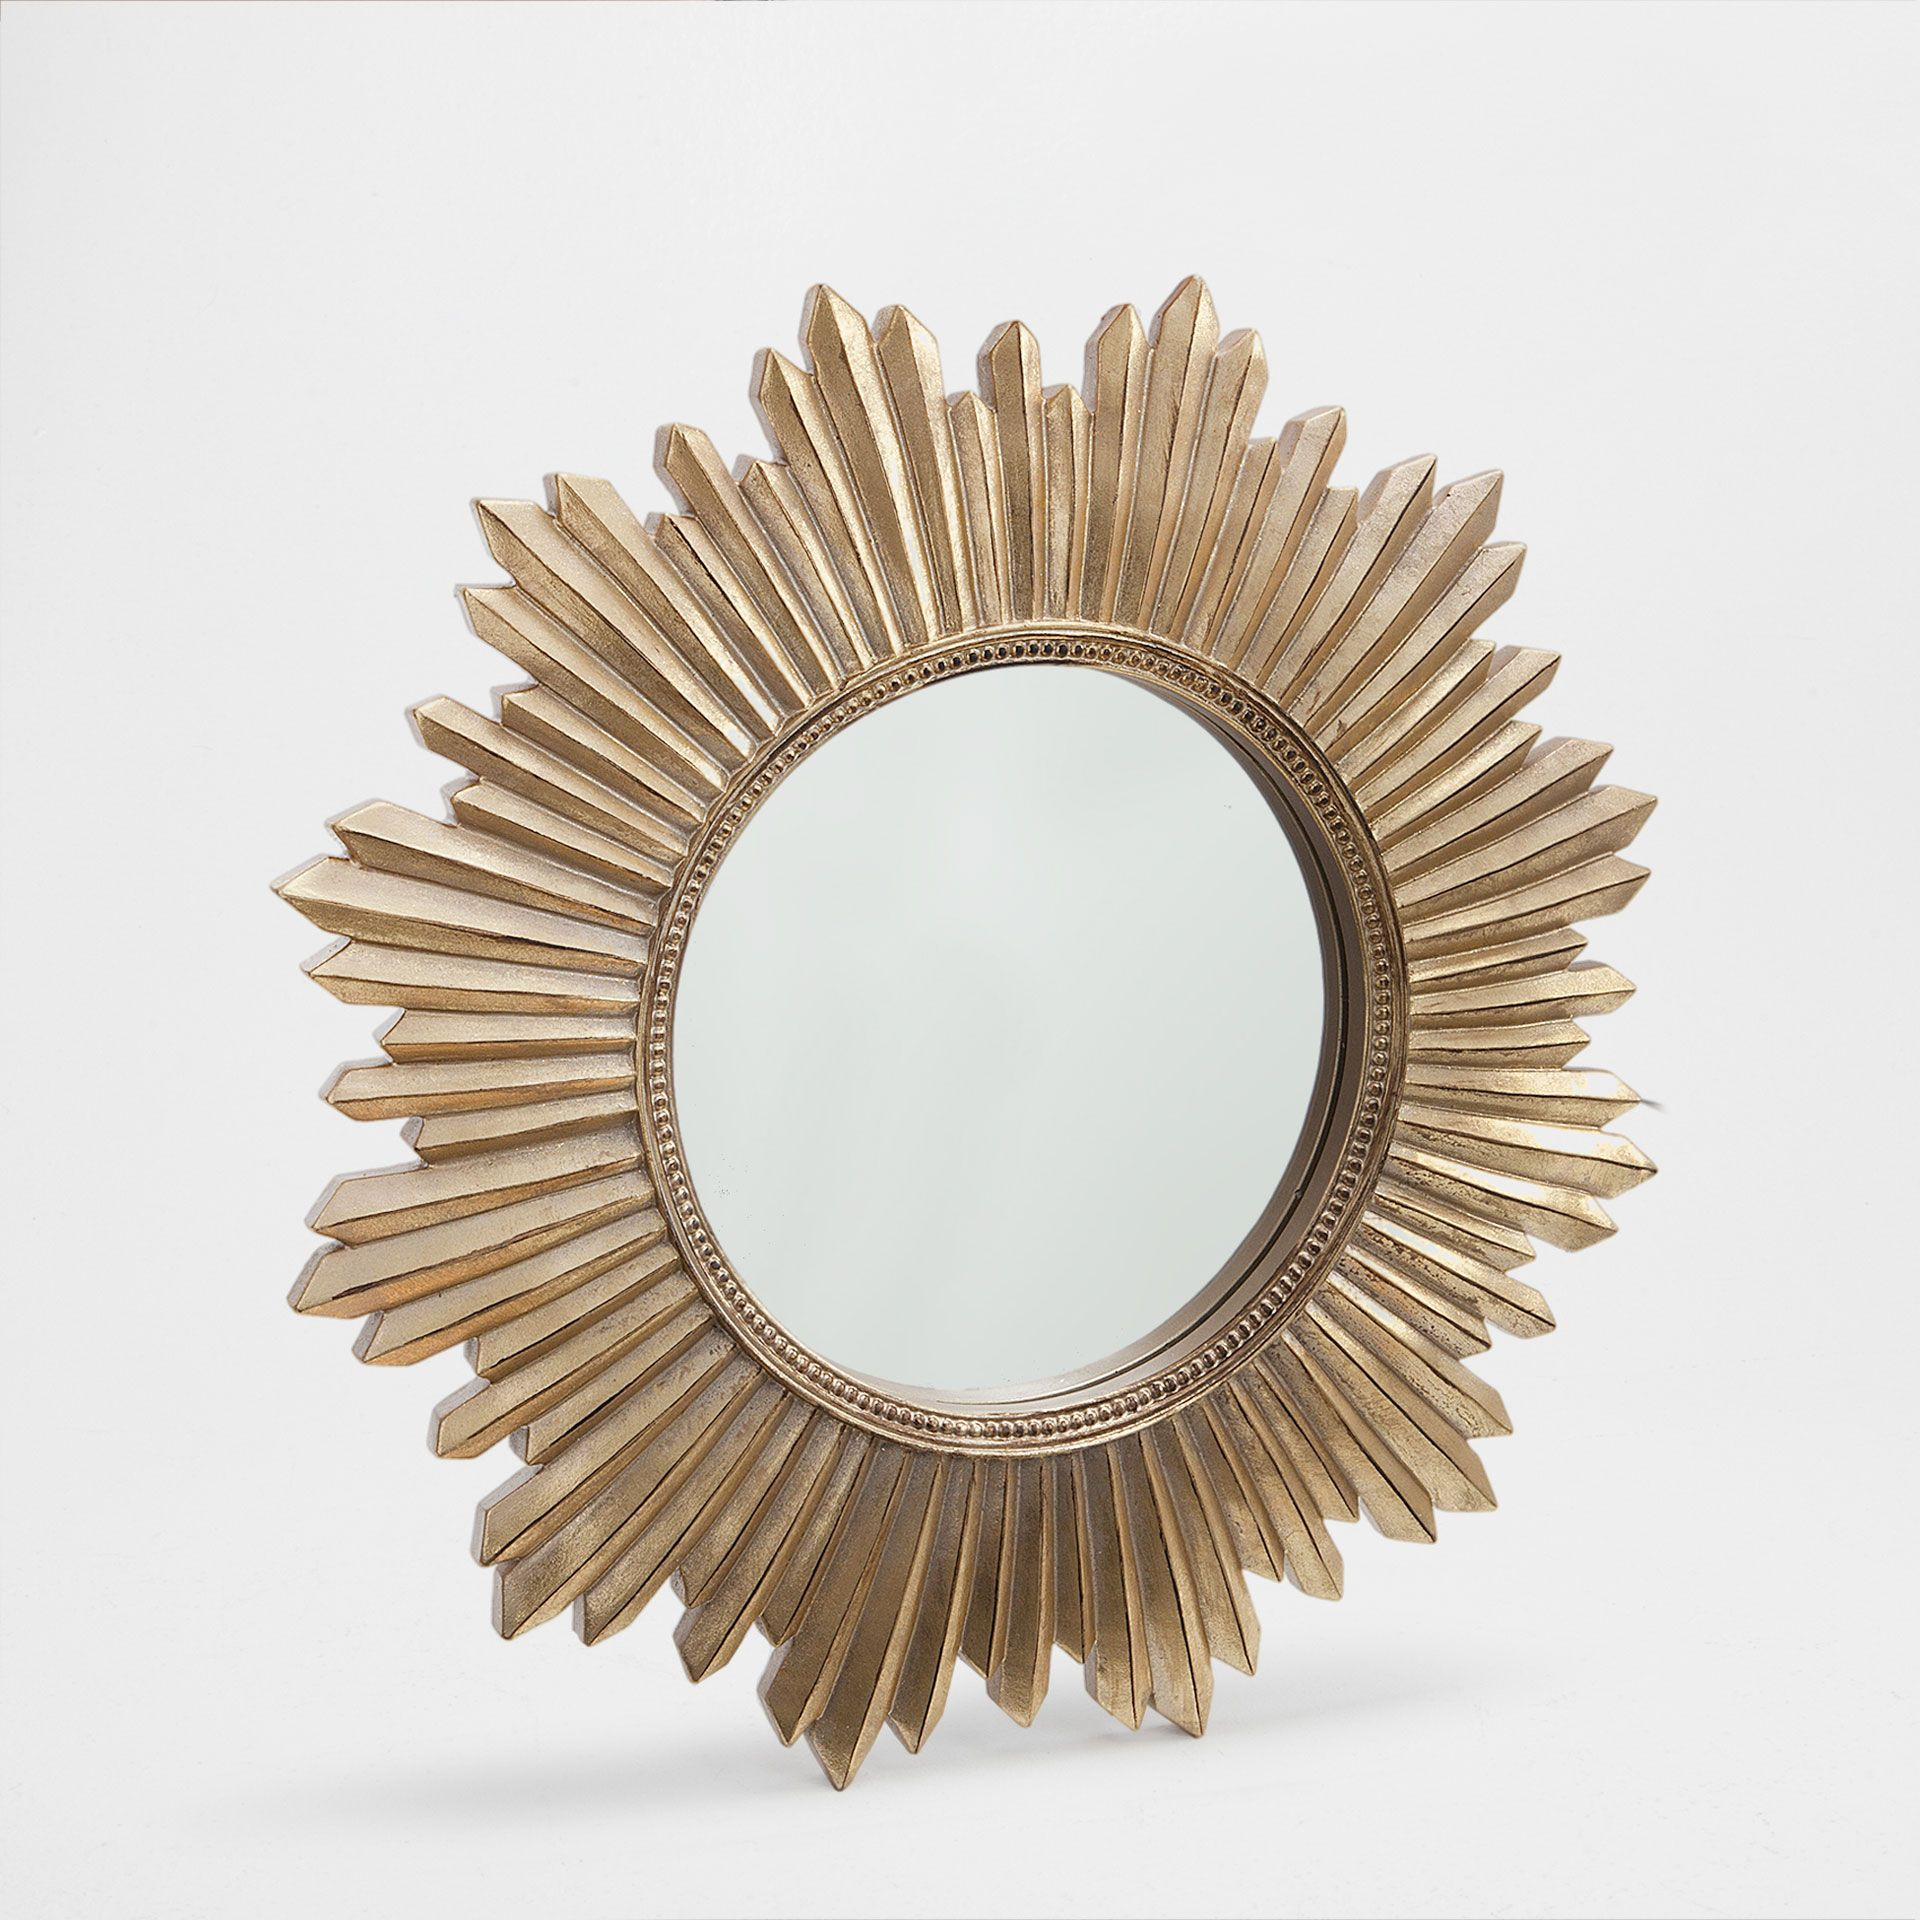 Golden sun shaped mirror wall decor pinterest shapes for Miroir soleil deco